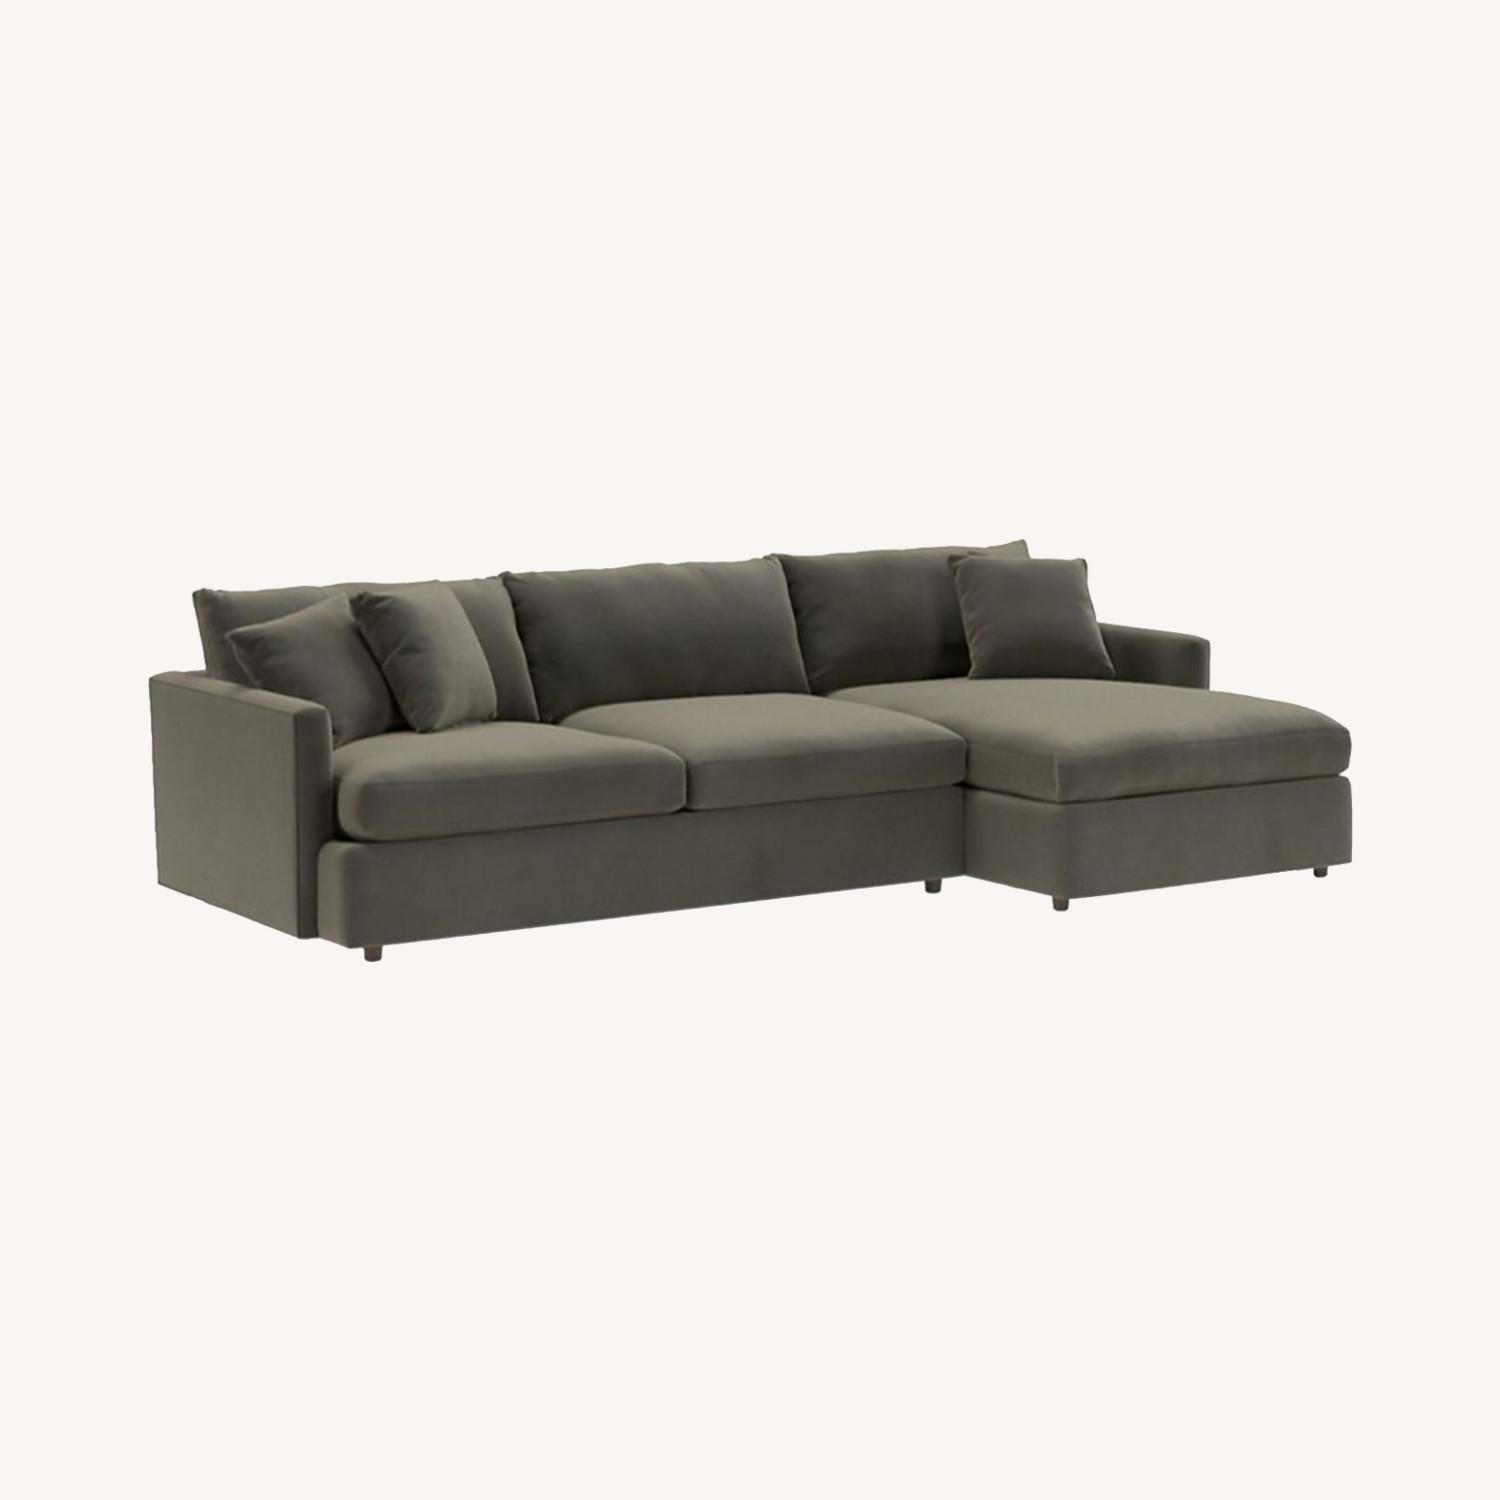 Crate & Barrel 3 Piece Sectional - image-0